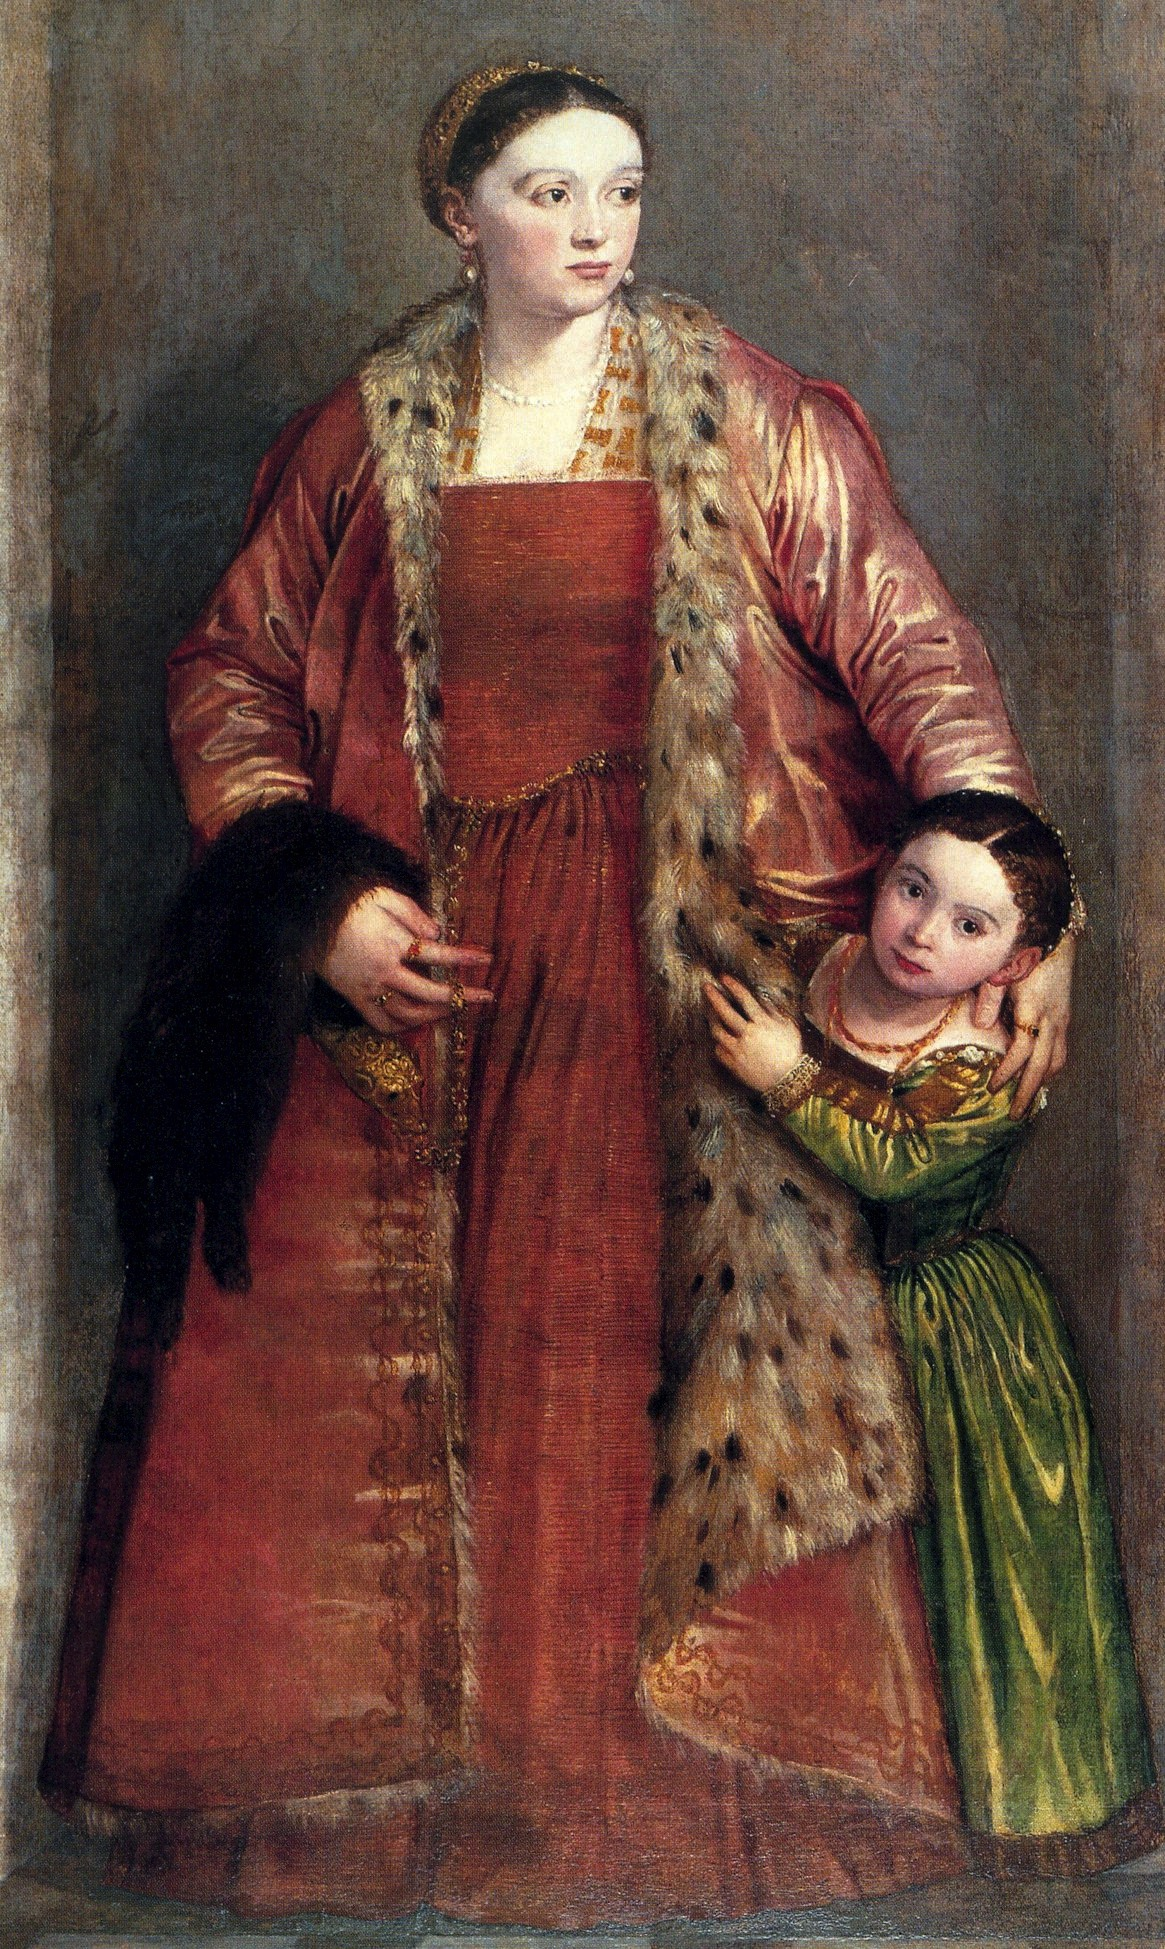 1551_countess_livia_da_porto_thiene_and_her_daughter_deidamia_by_paolo_caliari_veronese_walters_art_museum_baltimore_maryland_usa.jpeg